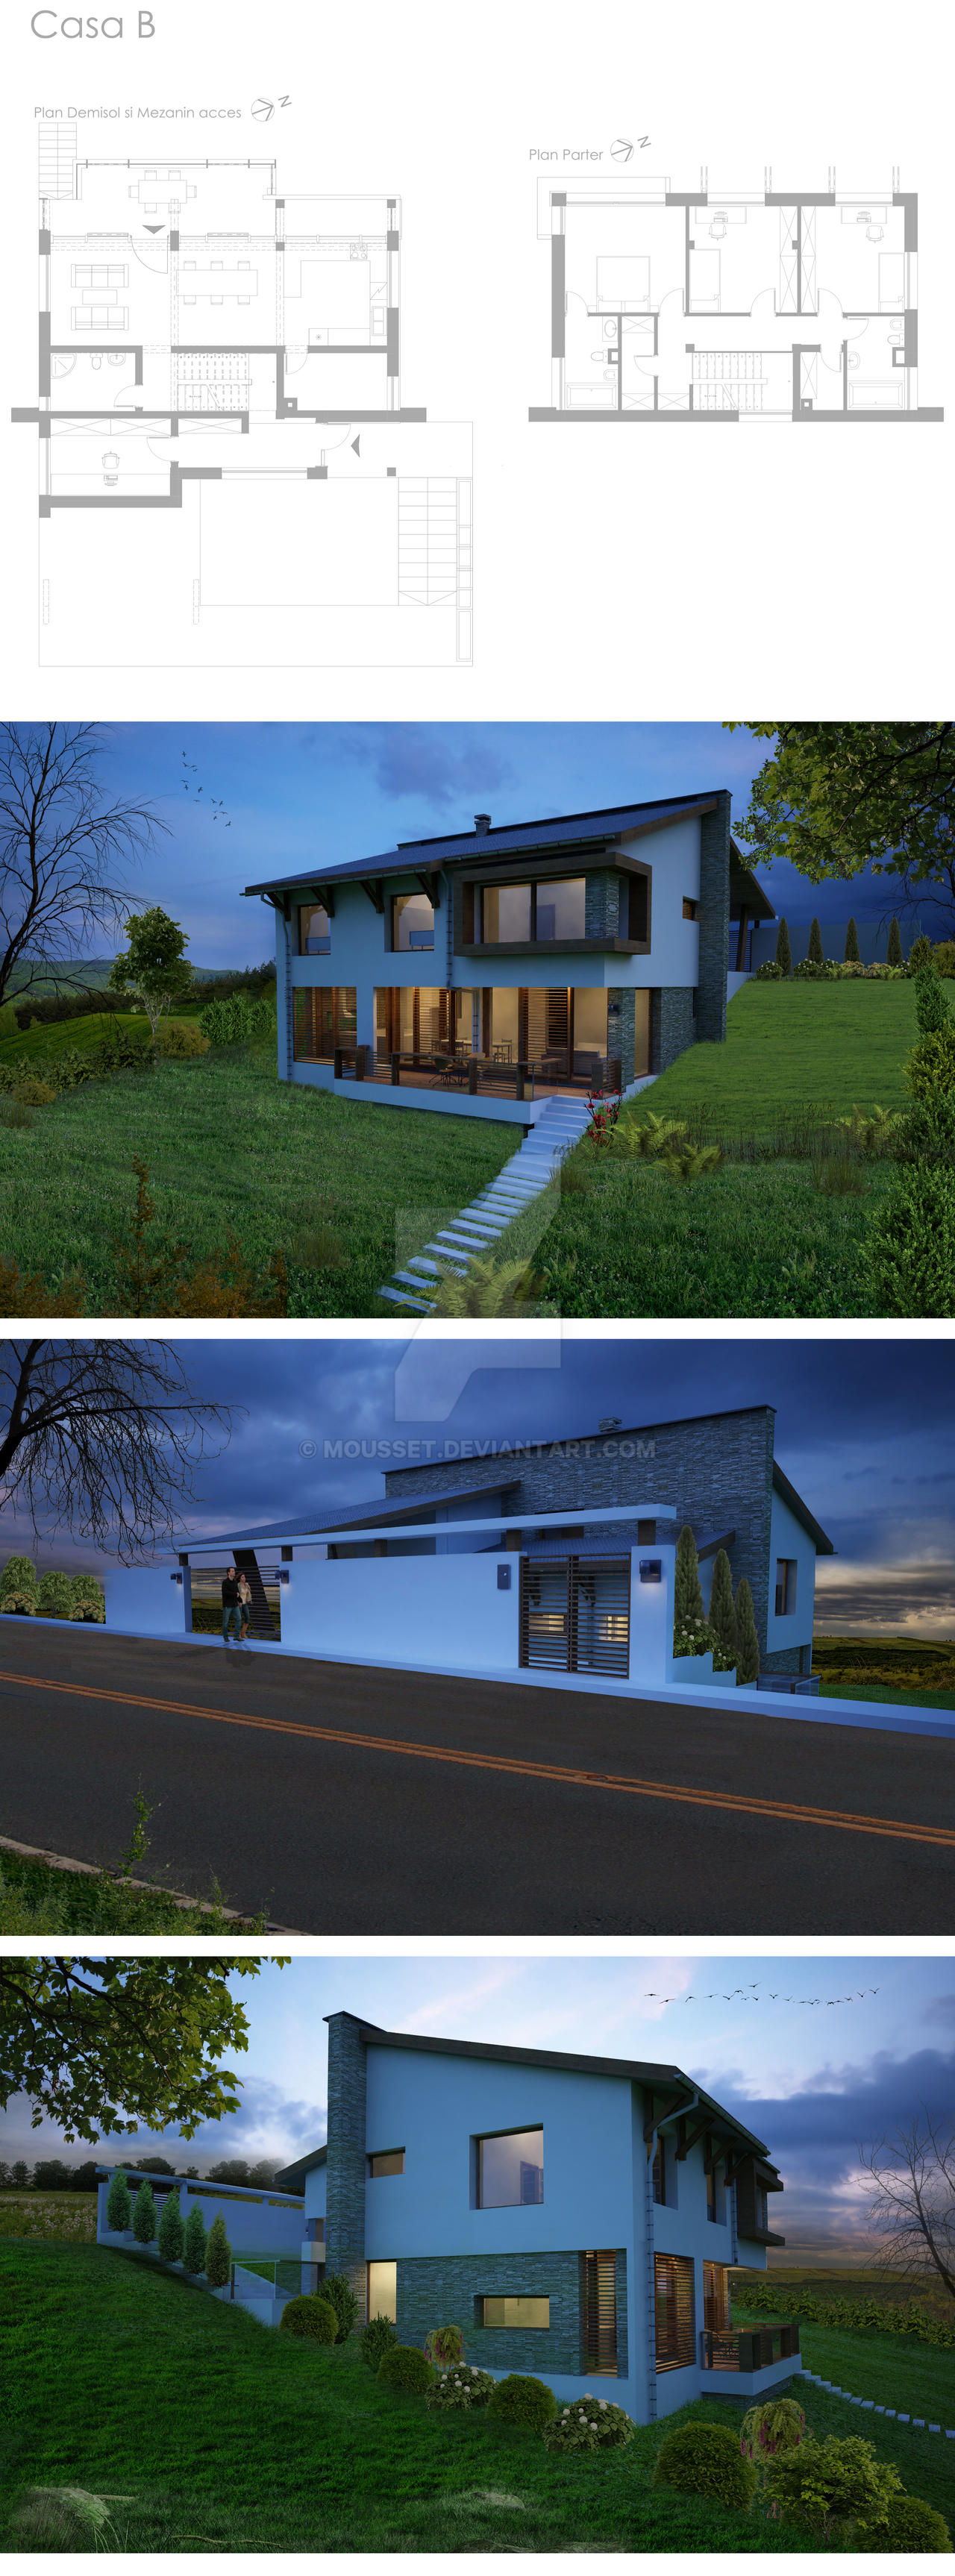 B house by mousset on deviantart for B house